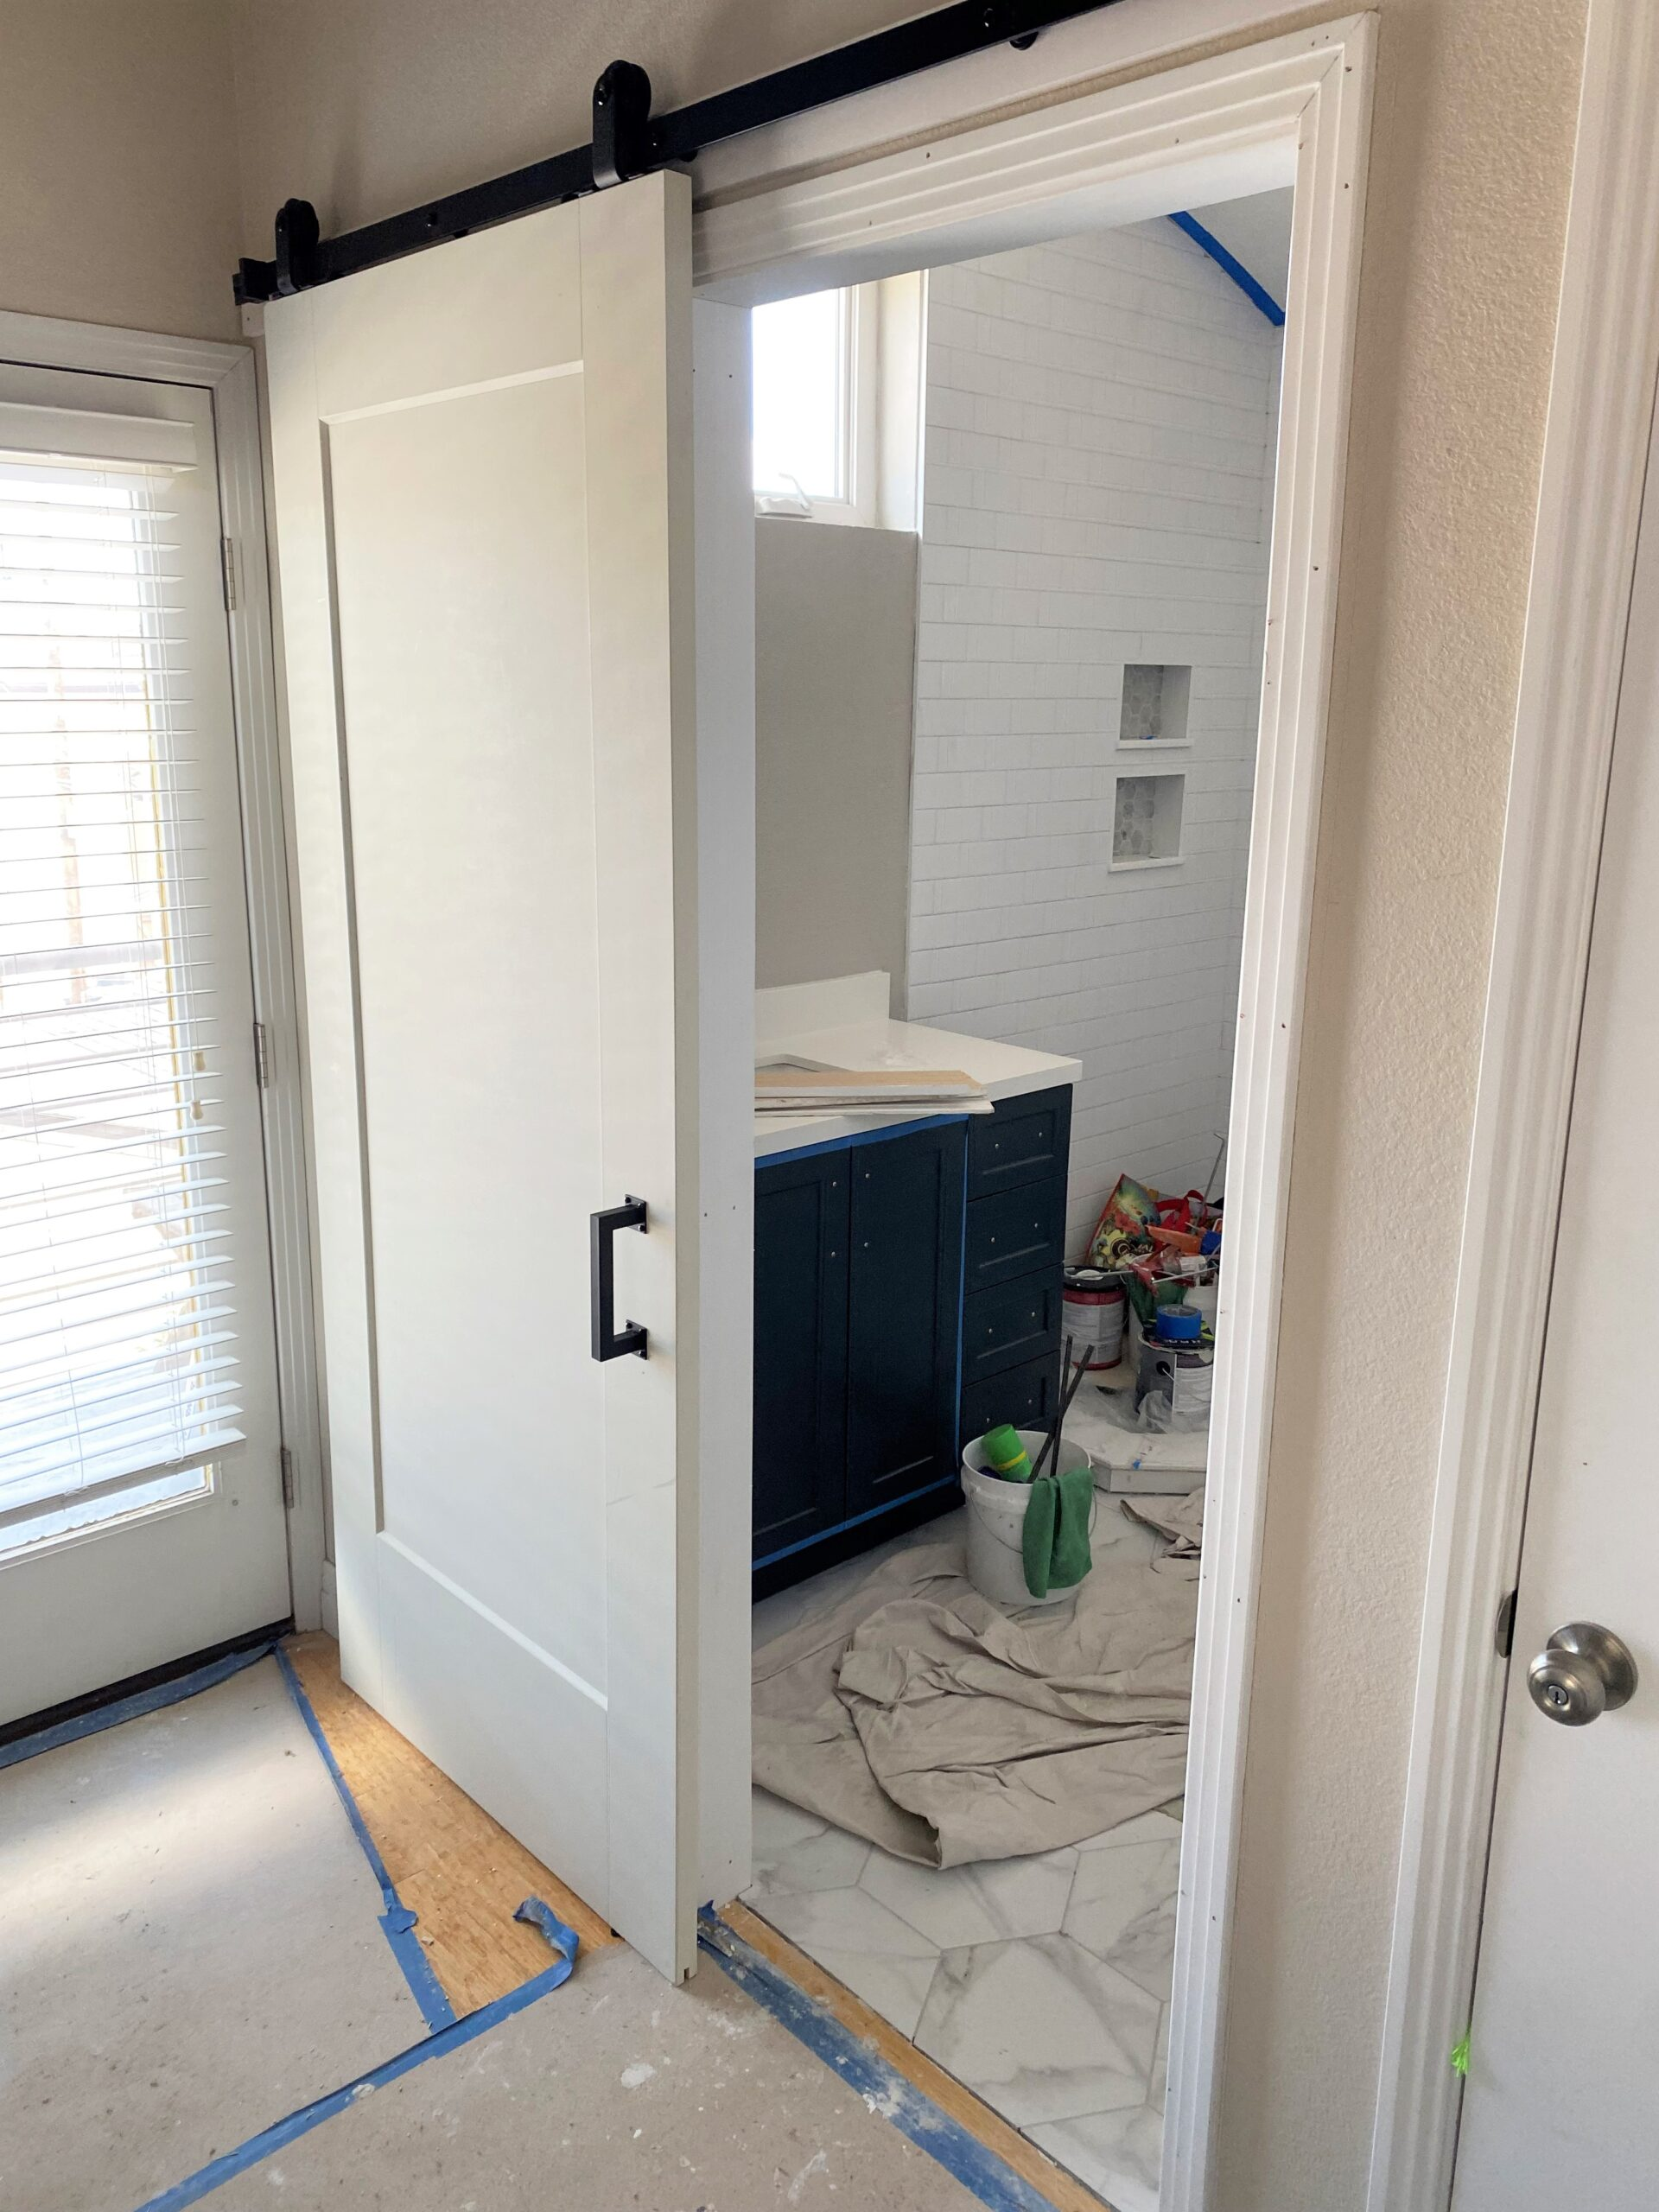 AFTER The finished trim and barn door installation for this bathroom entrance